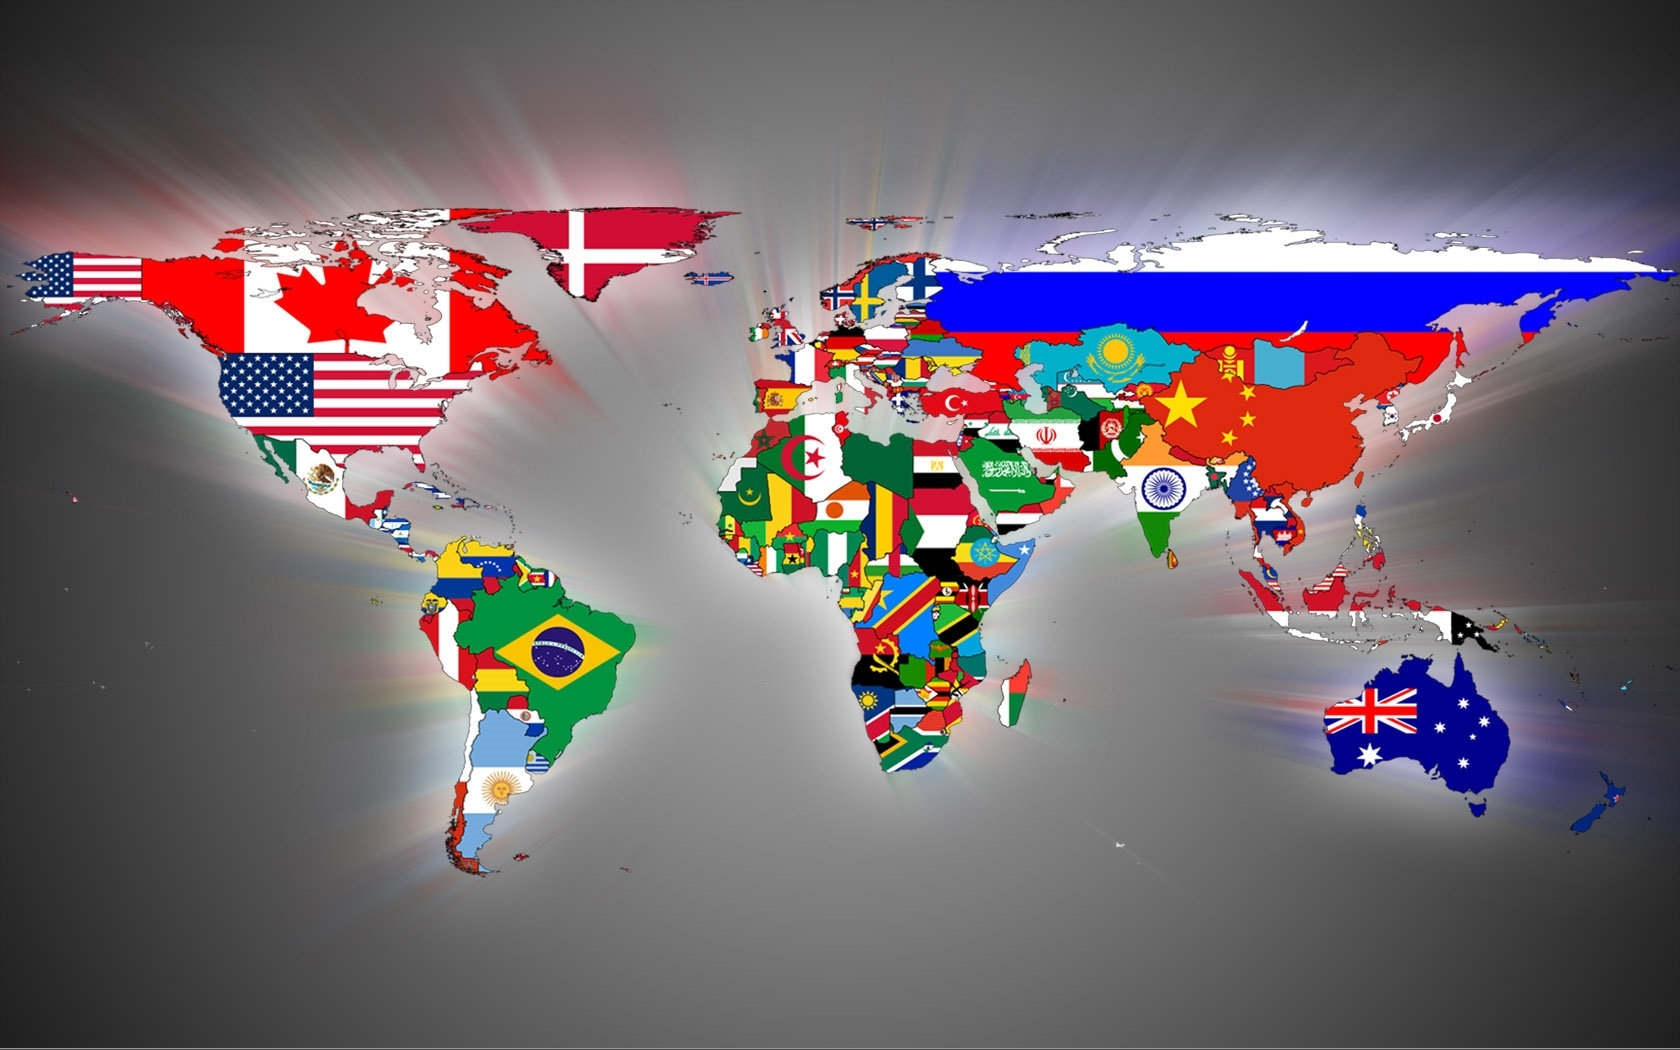 10 new best world map wallpaper full hd 1080p for pc background title 43 best ampamp inspirational high quality world map backgrounds dimension 1680 x 1050 file type jpgjpeg gumiabroncs Images